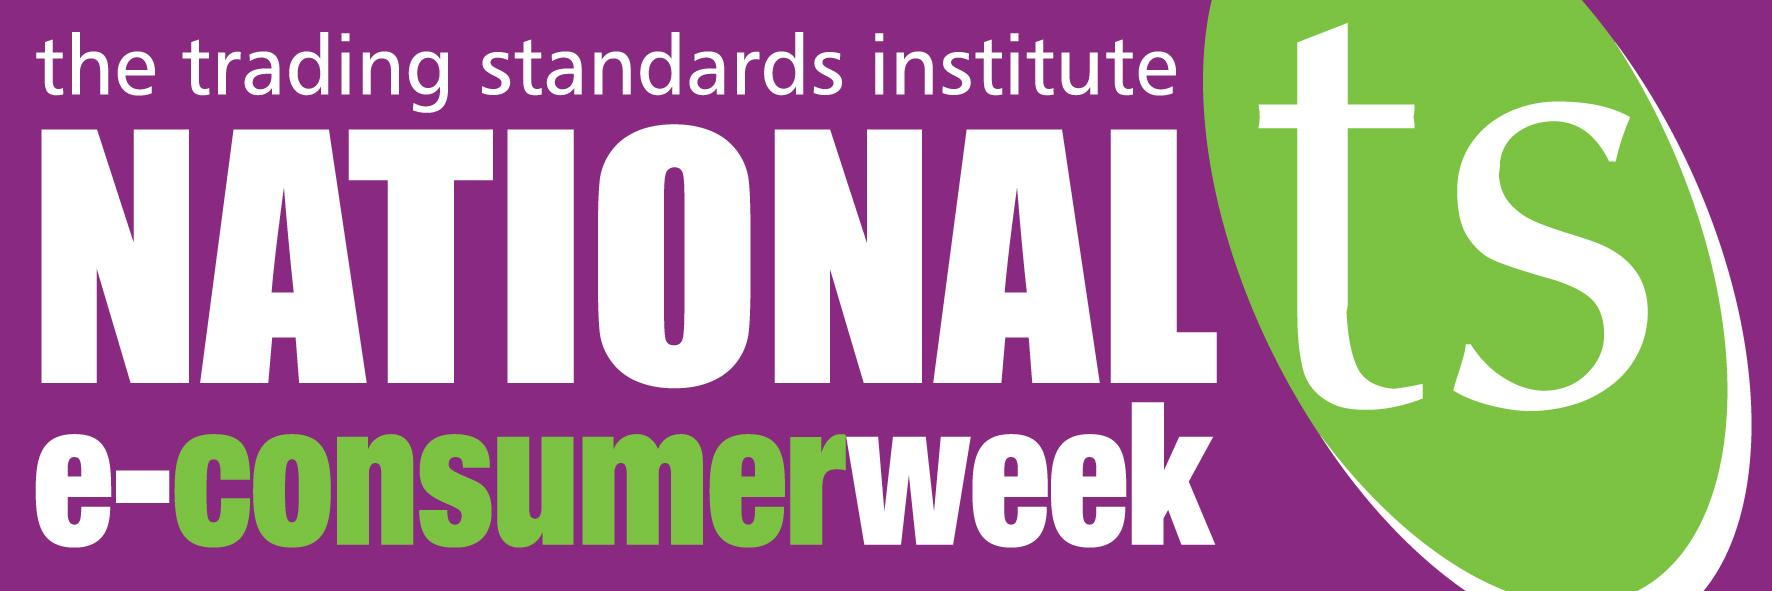 National e-consumer week logo